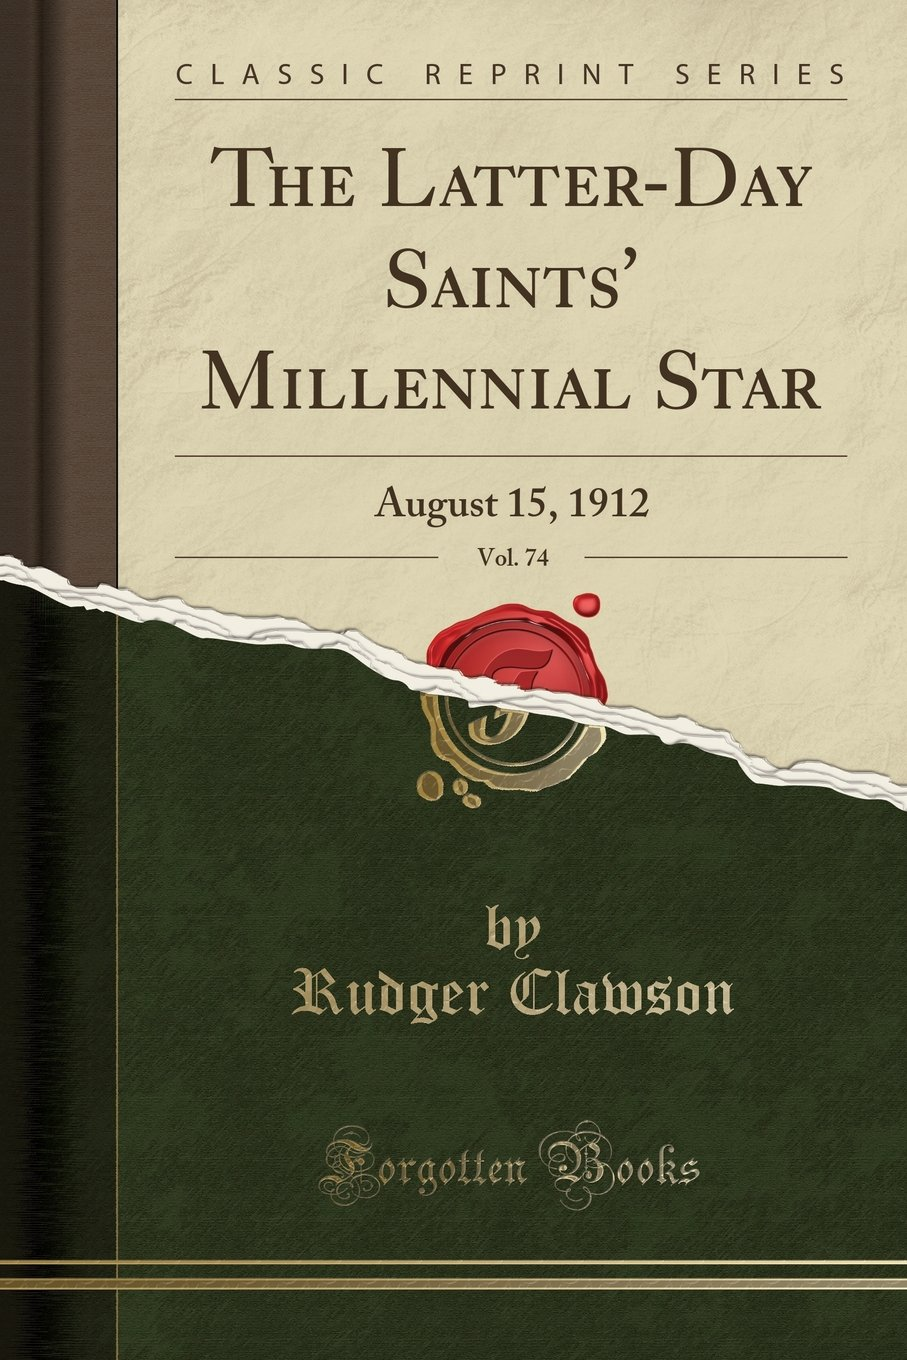 The Latter-Day Saints' Millennial Star, Vol. 74: August 15, 1912 (Classic Reprint) pdf